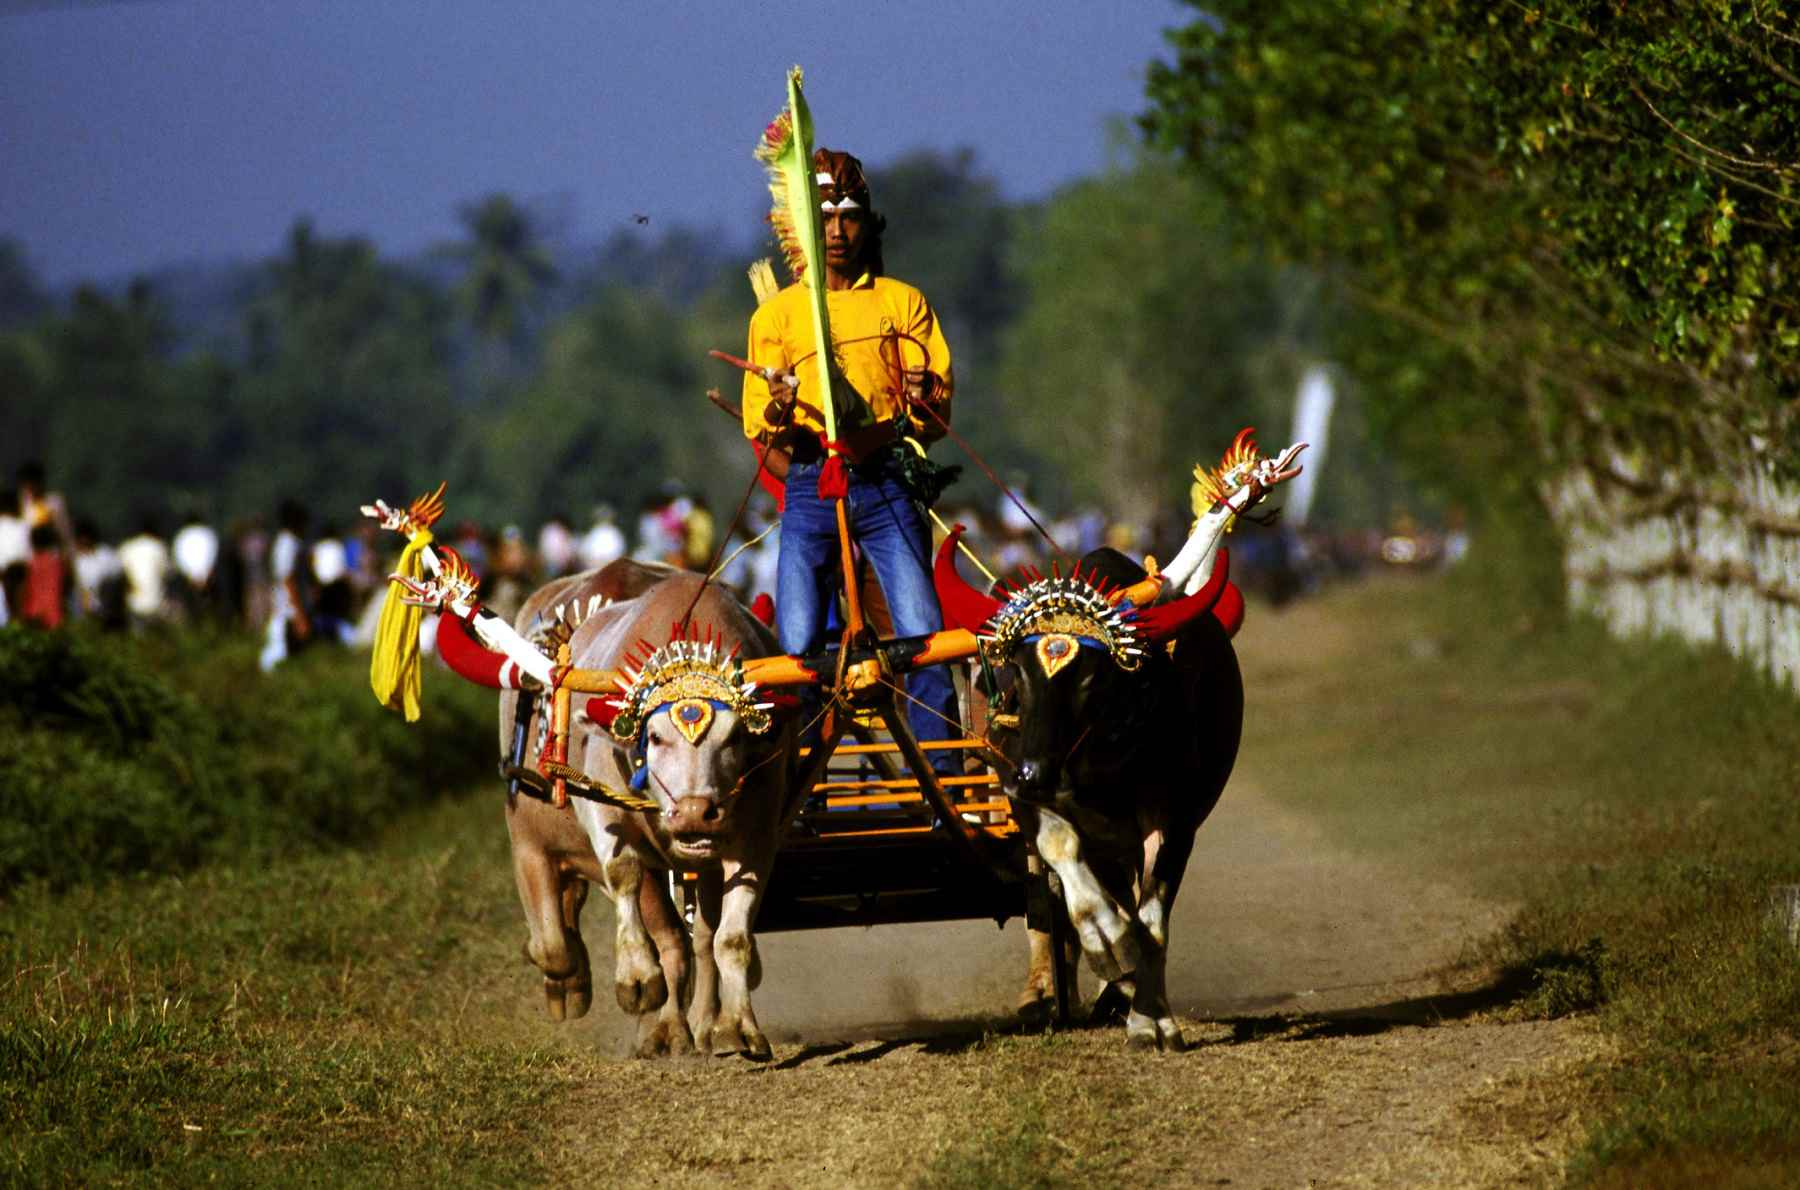 Water buffalo racing with chariots, West Bali